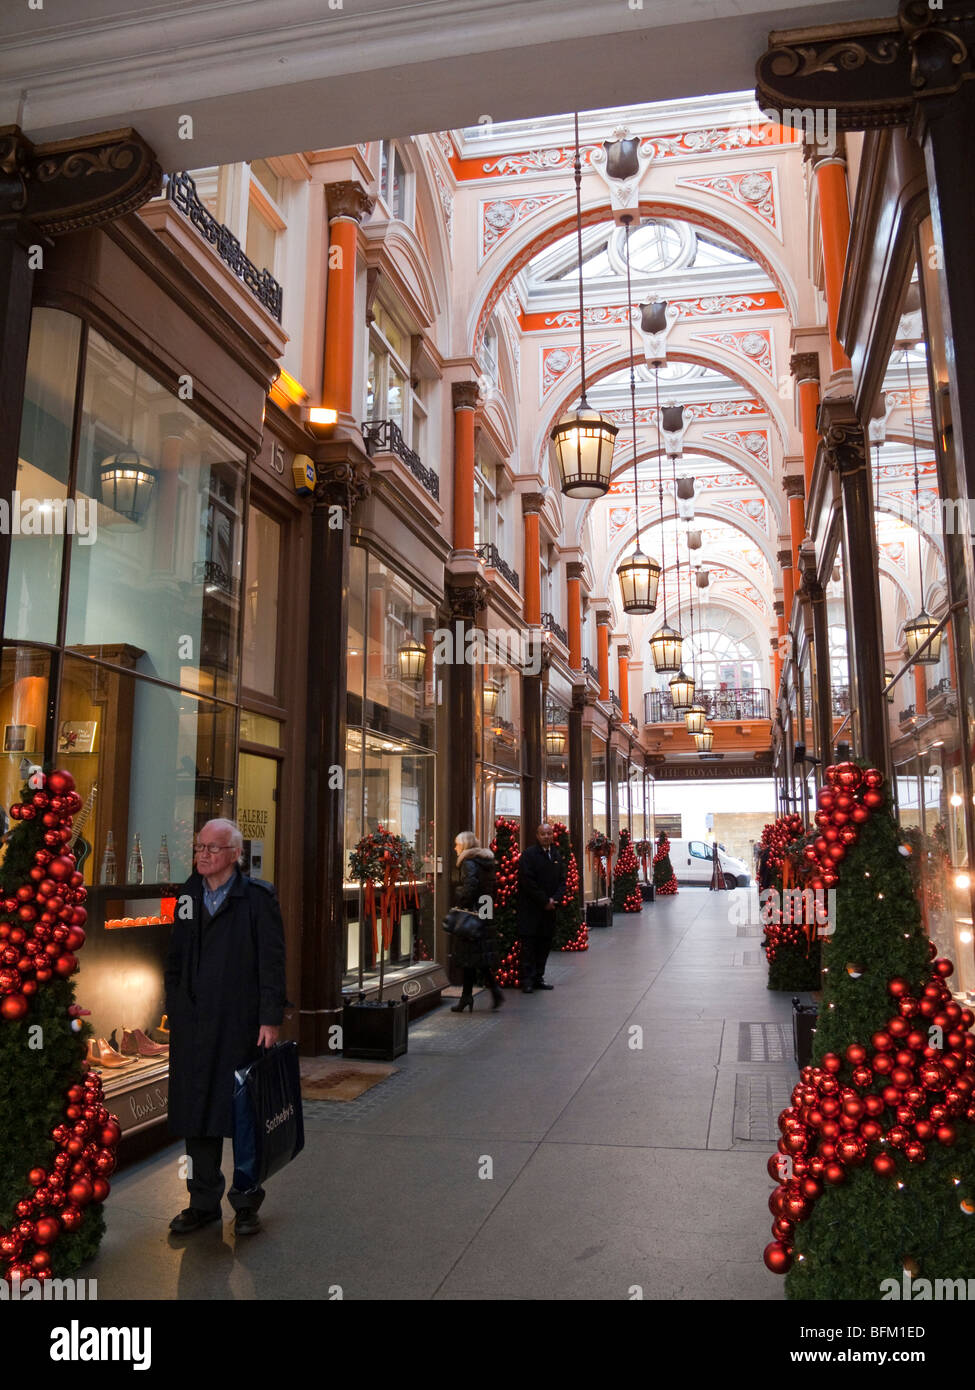 Royal Arcade, Christmas display, Old Bond Street, Mayfair, London, England, UK - Stock Image